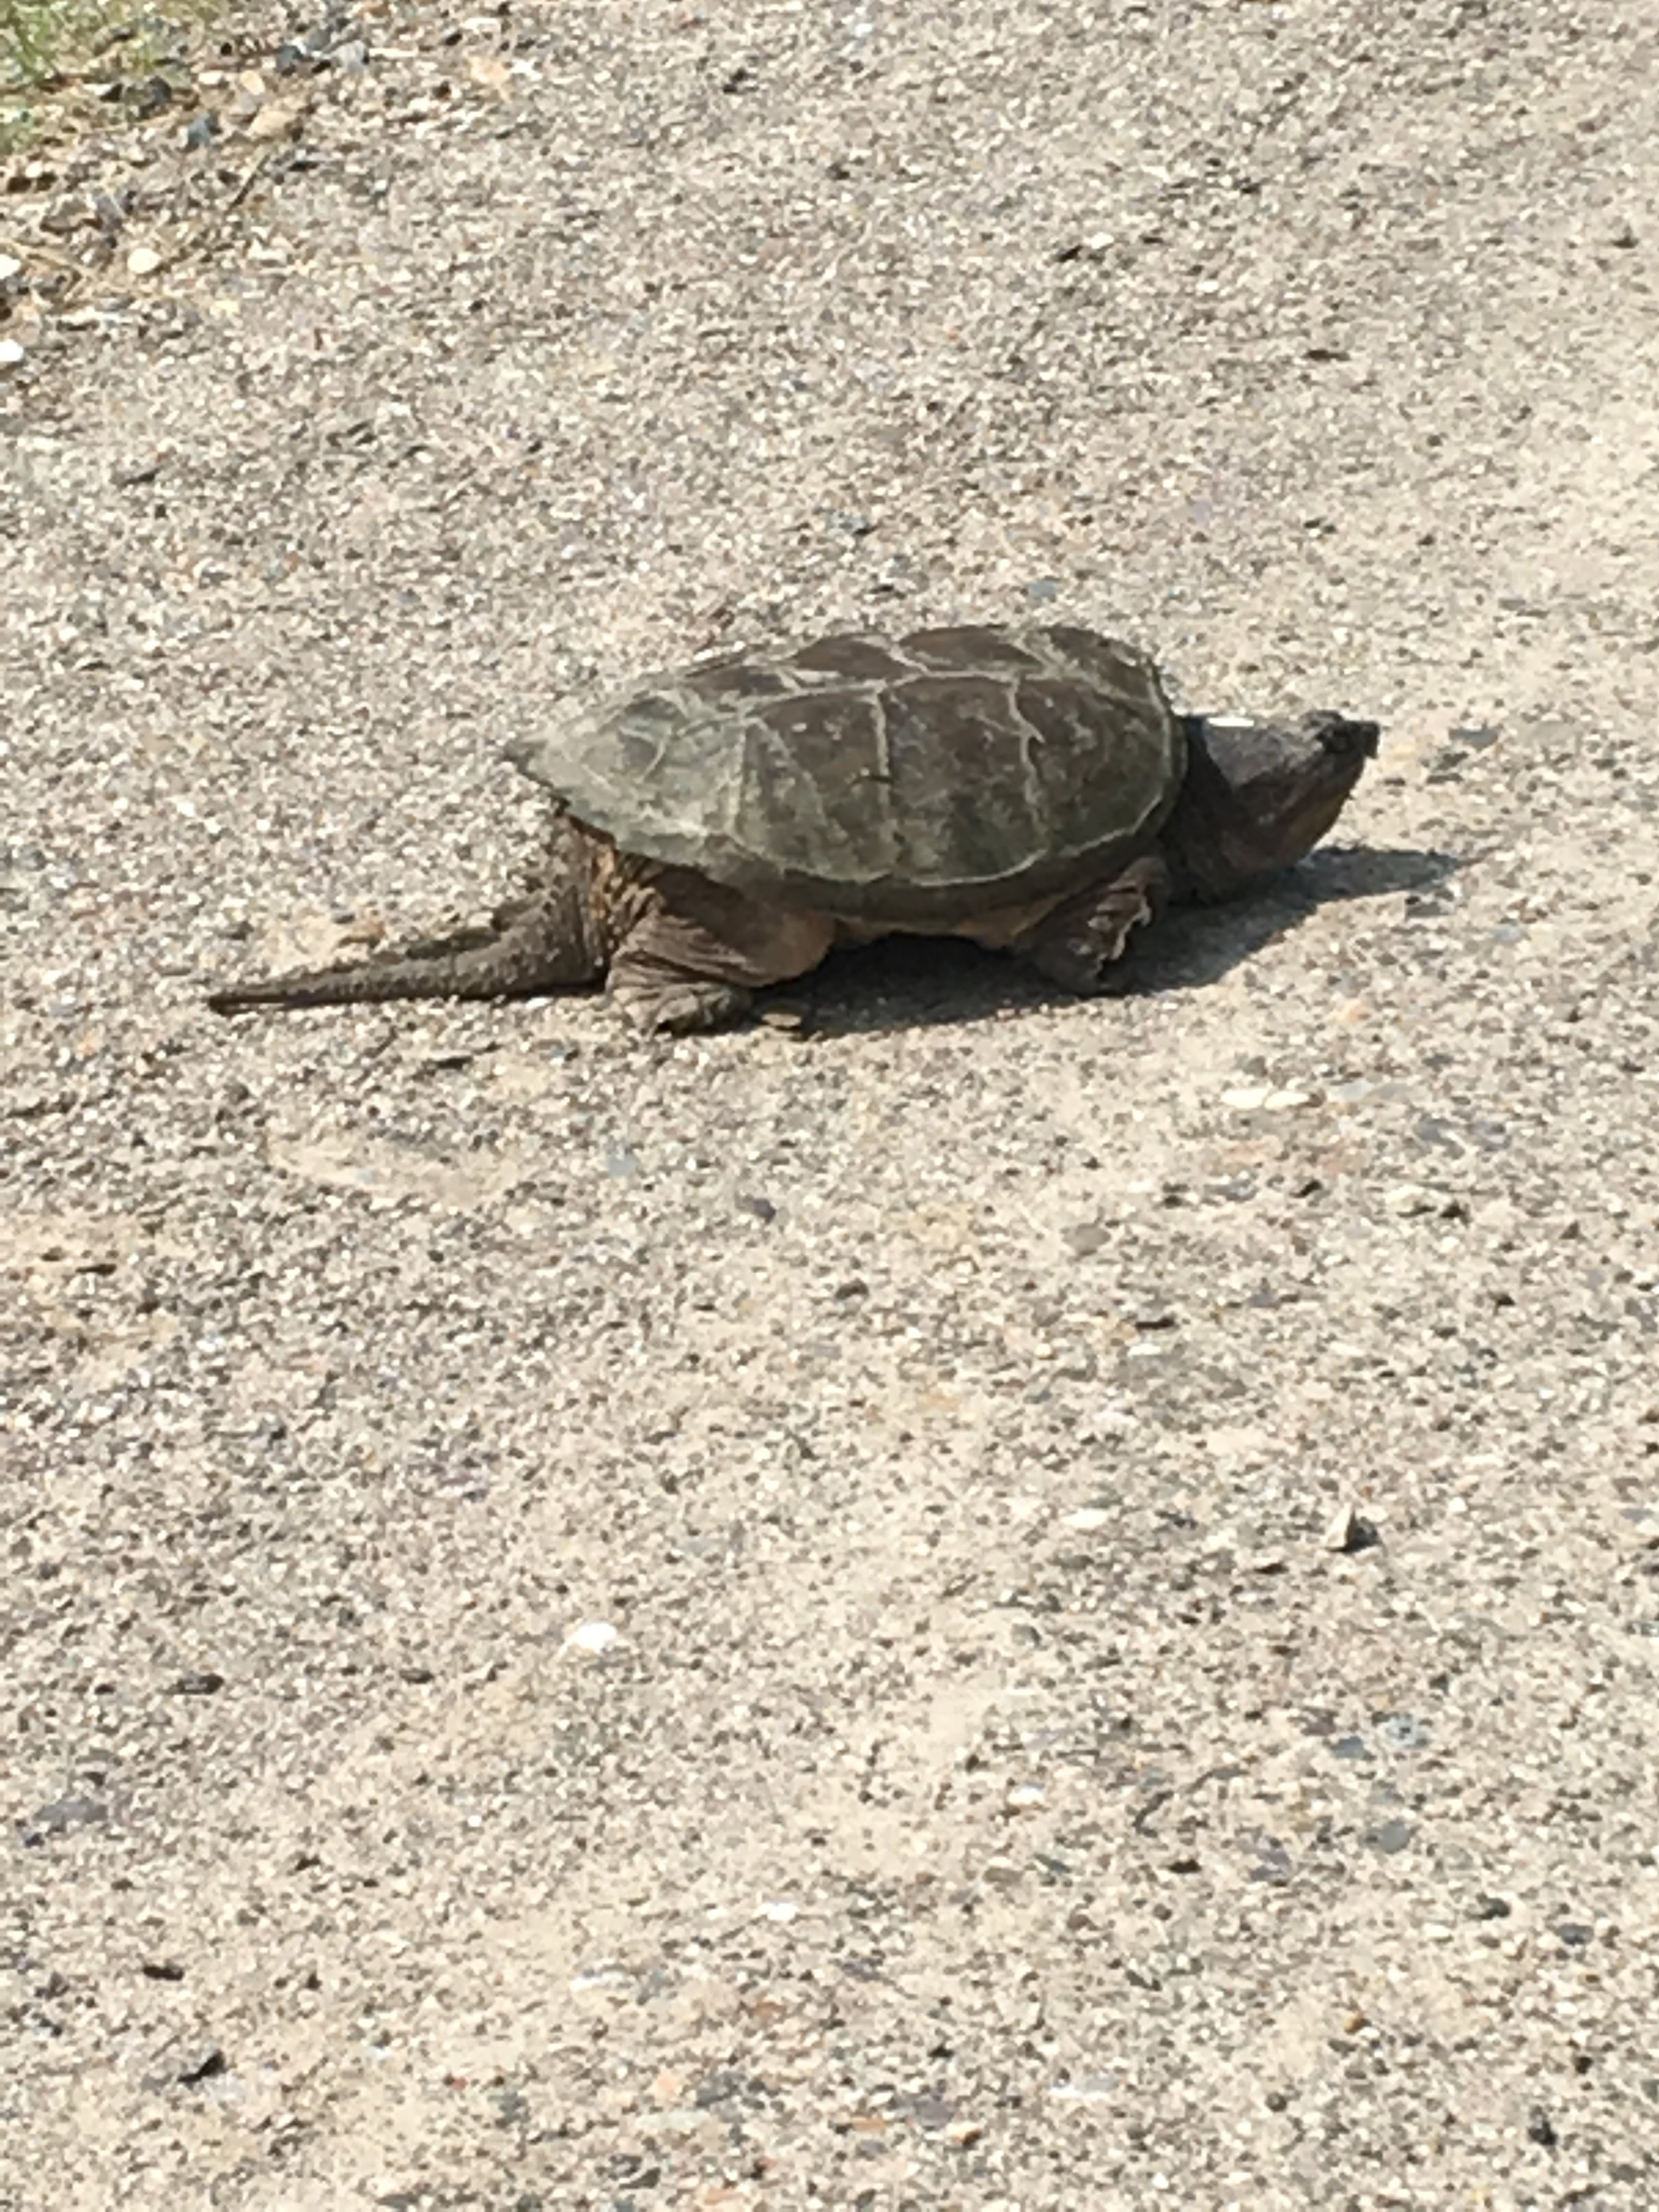 she was leaving the edge of my dirt road this morning,   having just left a cache of her new eggs in the road-side sand.  another edgy female